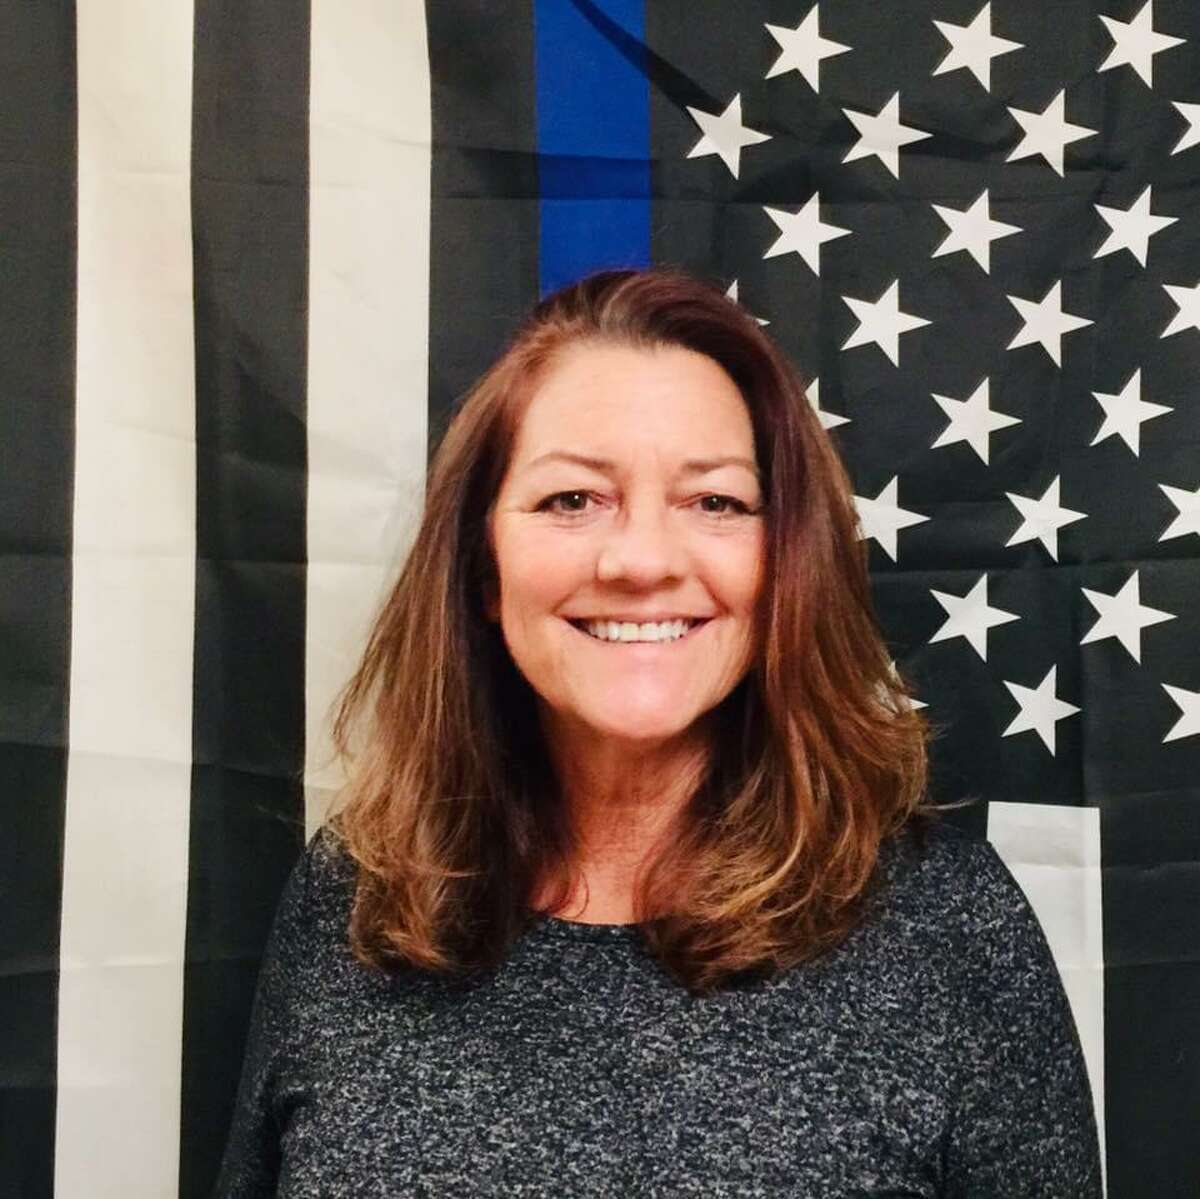 Linda Greenan is running for Place 2 in the city of Humble May 1 election, with early voting starting April 19.